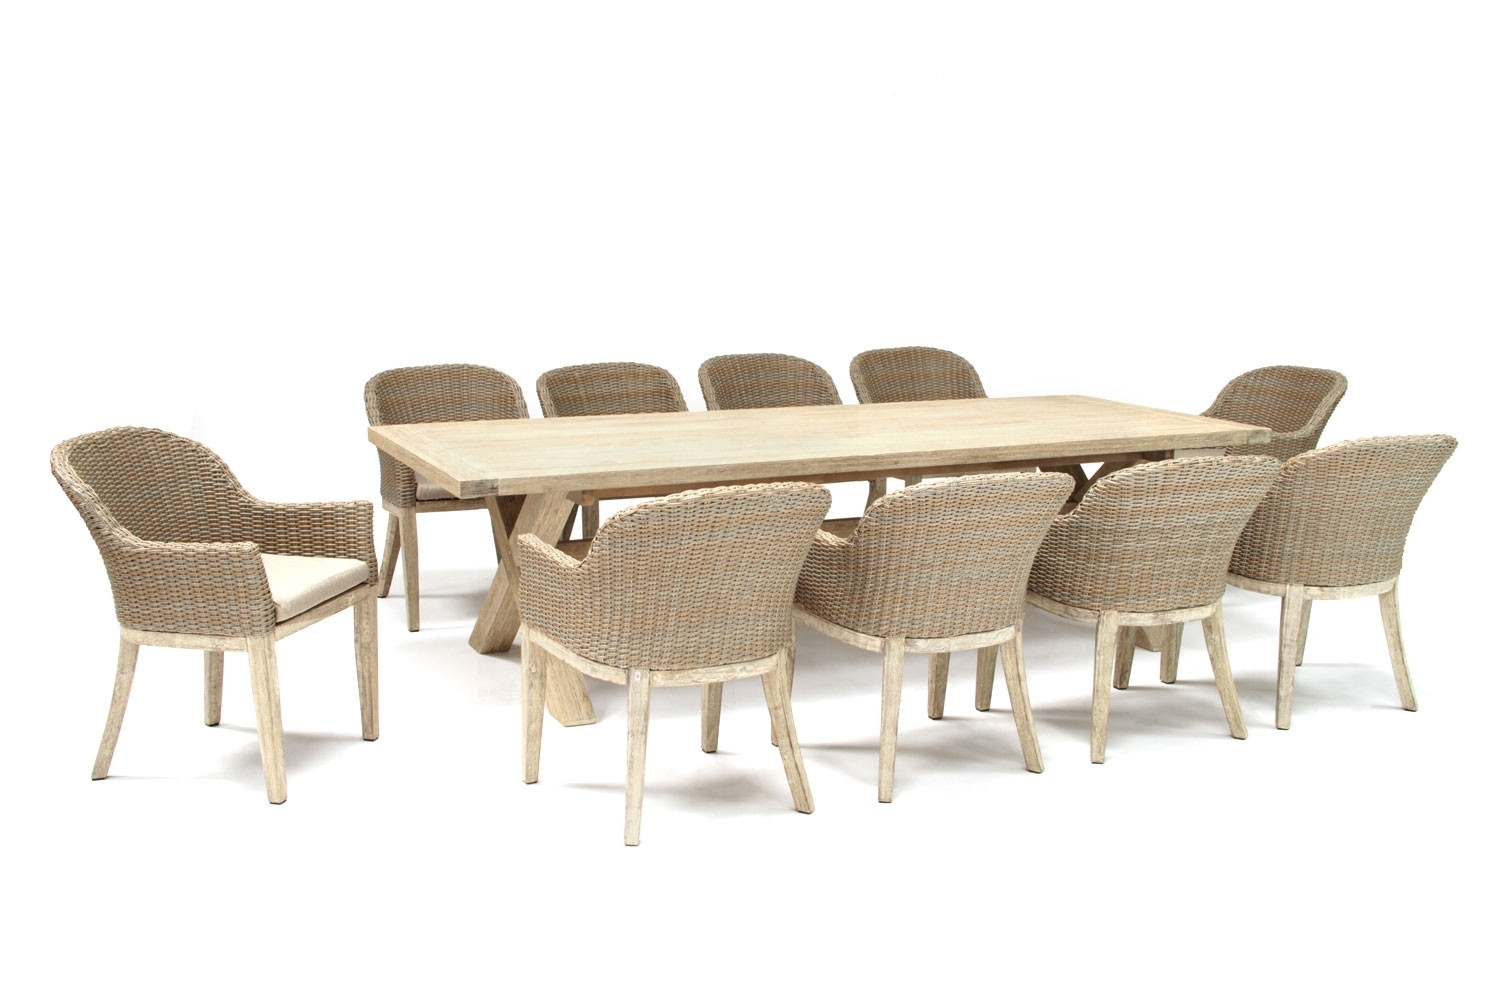 Kettler Cora 280X100Cm 10 Seat Dining Set Throughout Most Recently Released Cora Dining Tables (View 5 of 20)